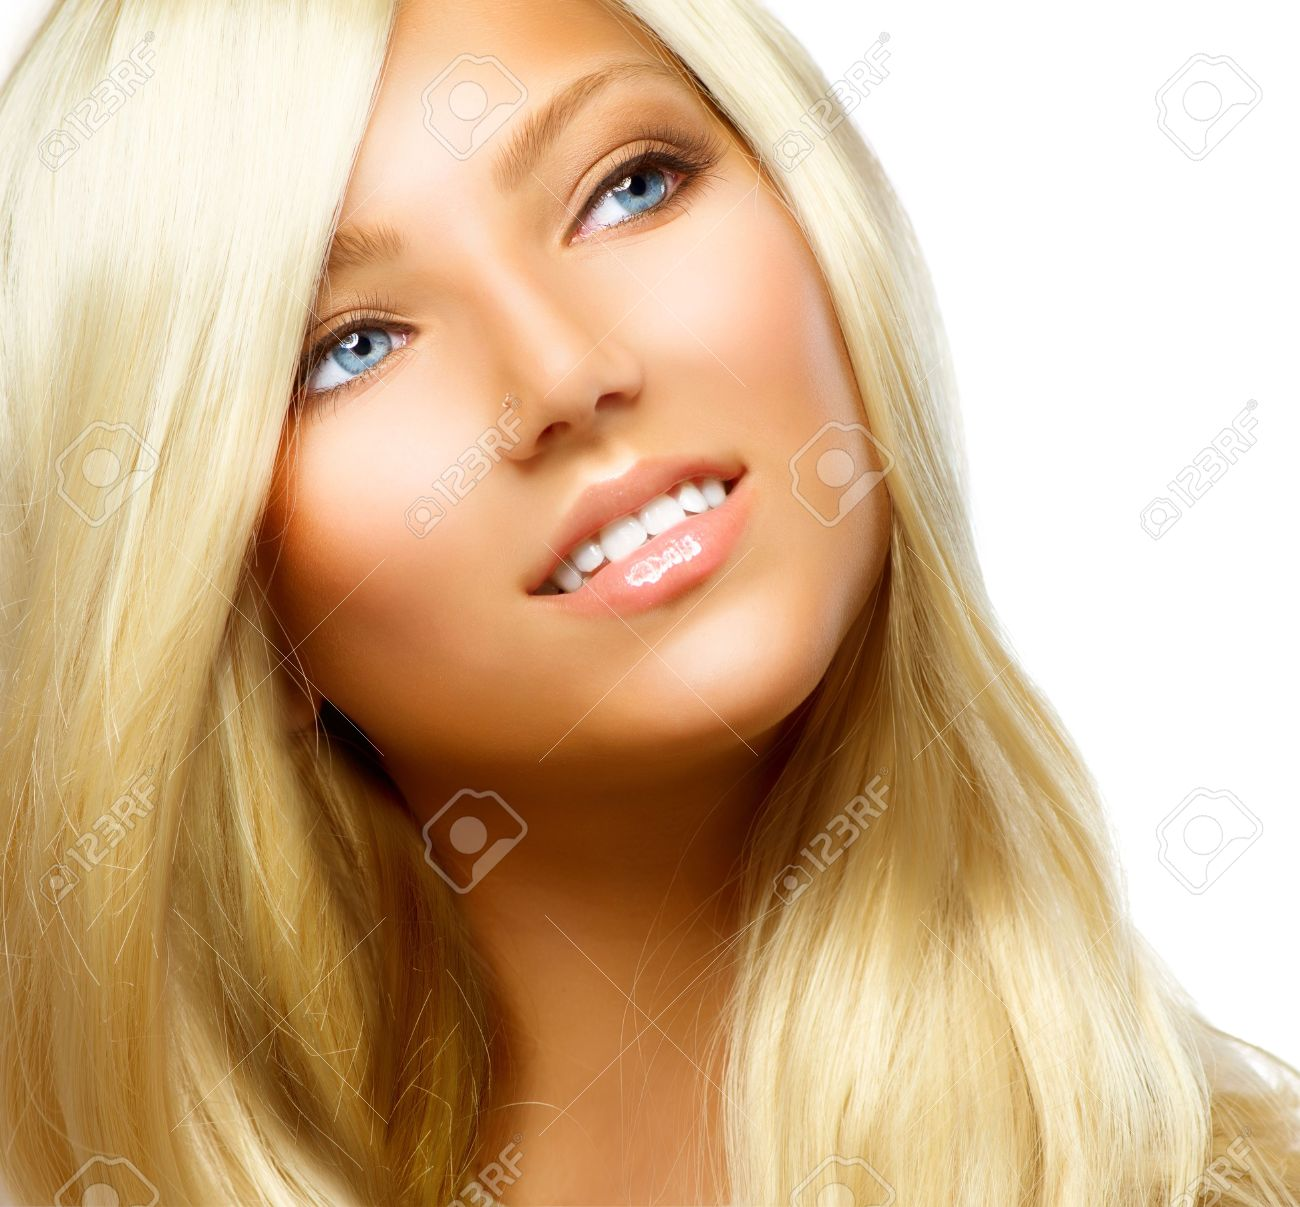 Beautiful Blond Girl isolated on a White Background Stock Photo - 14778947